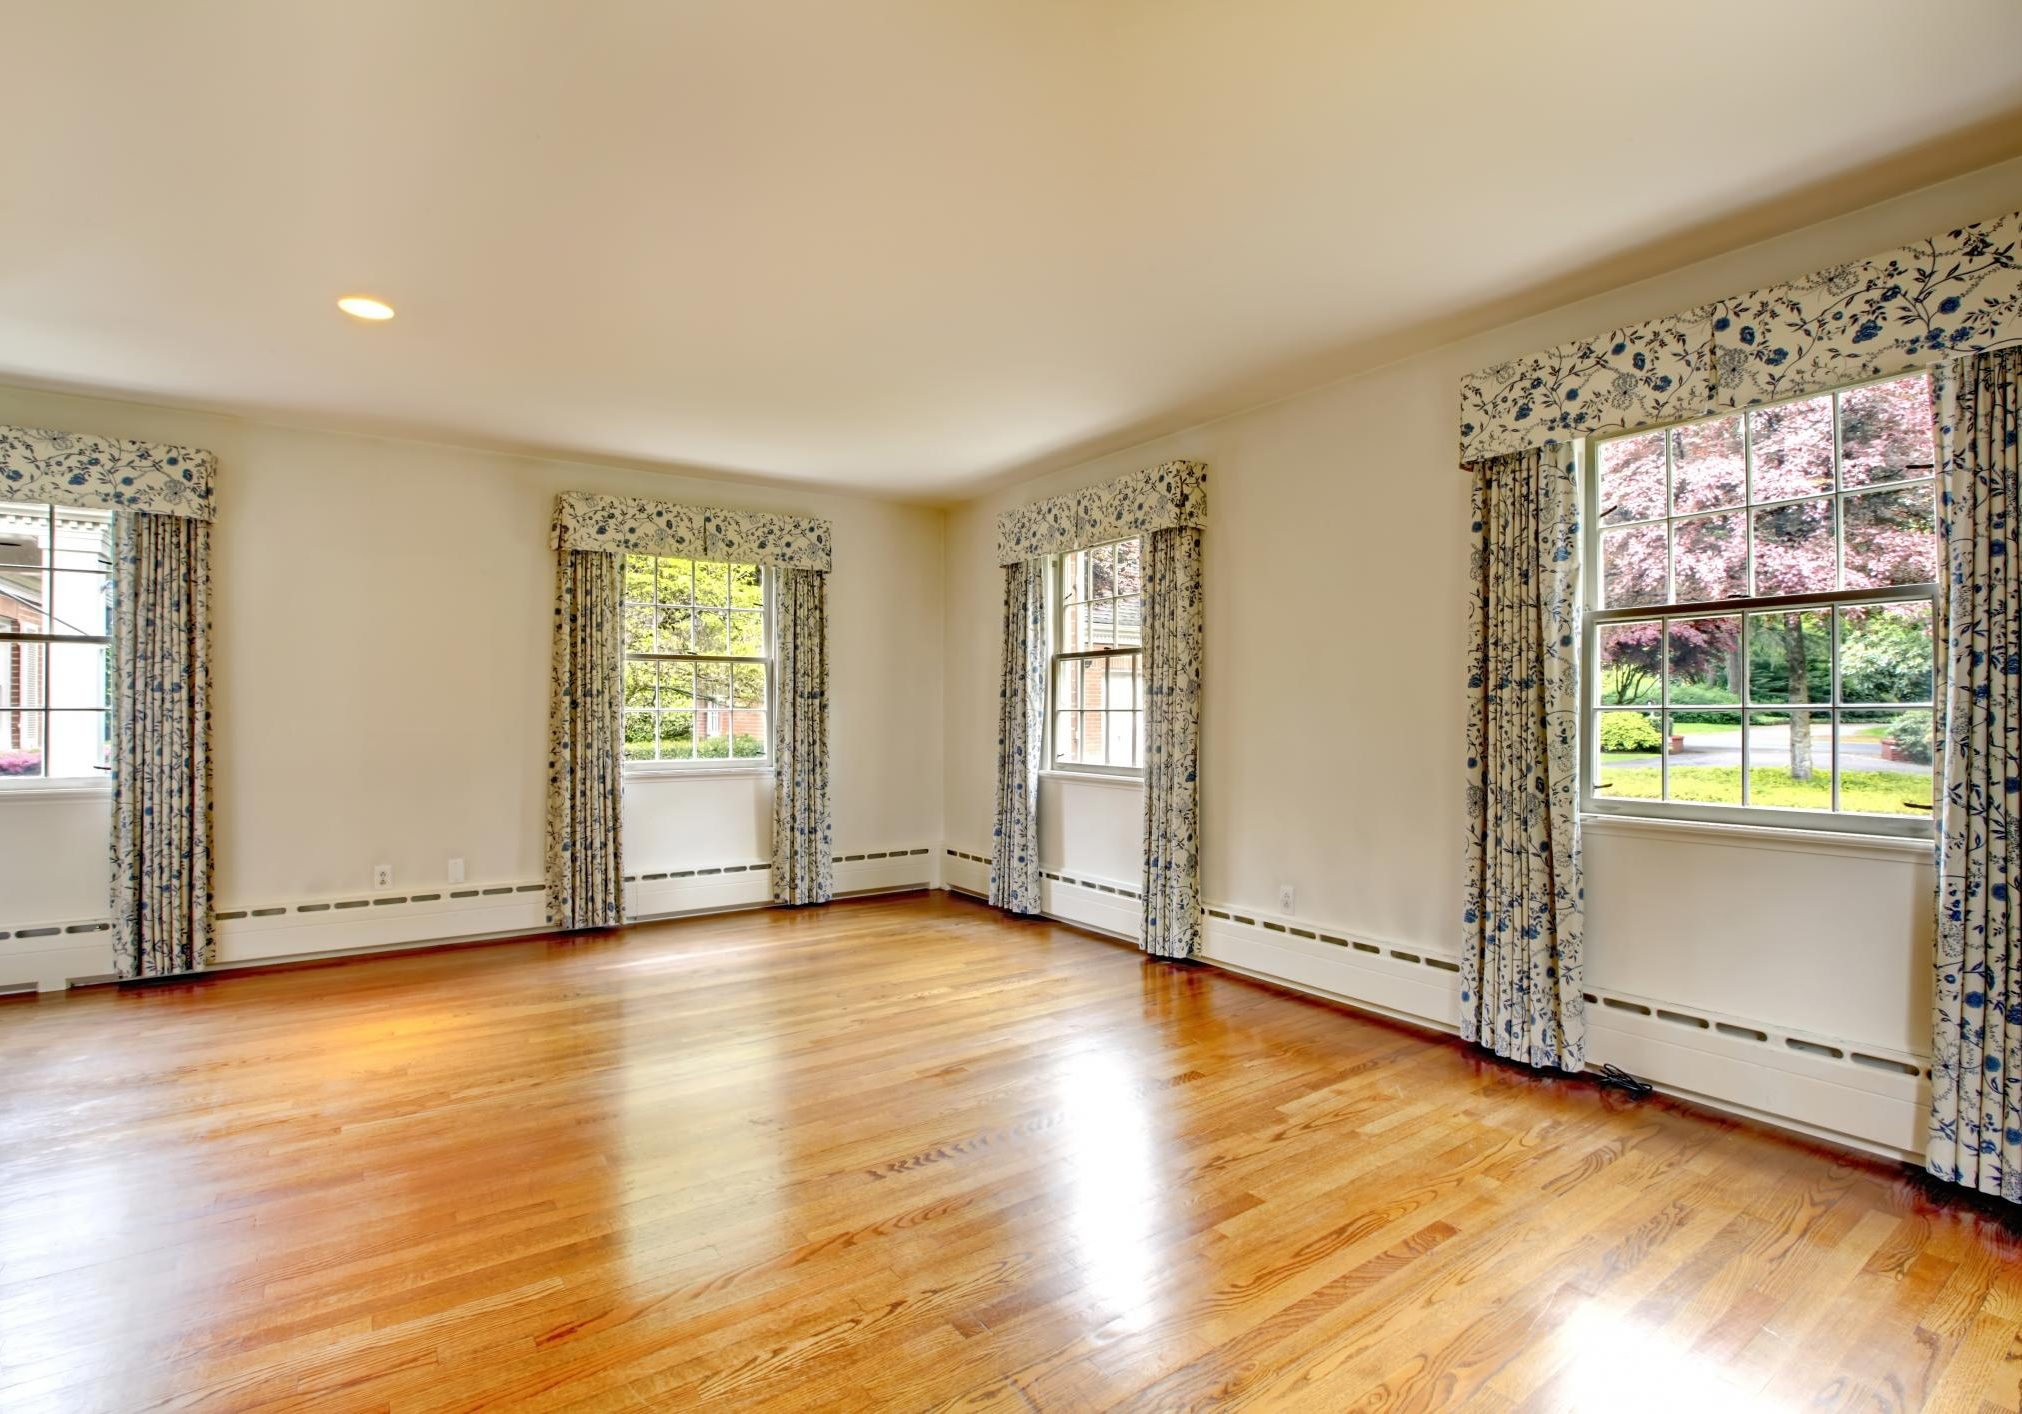 an empty house room with floral curtains